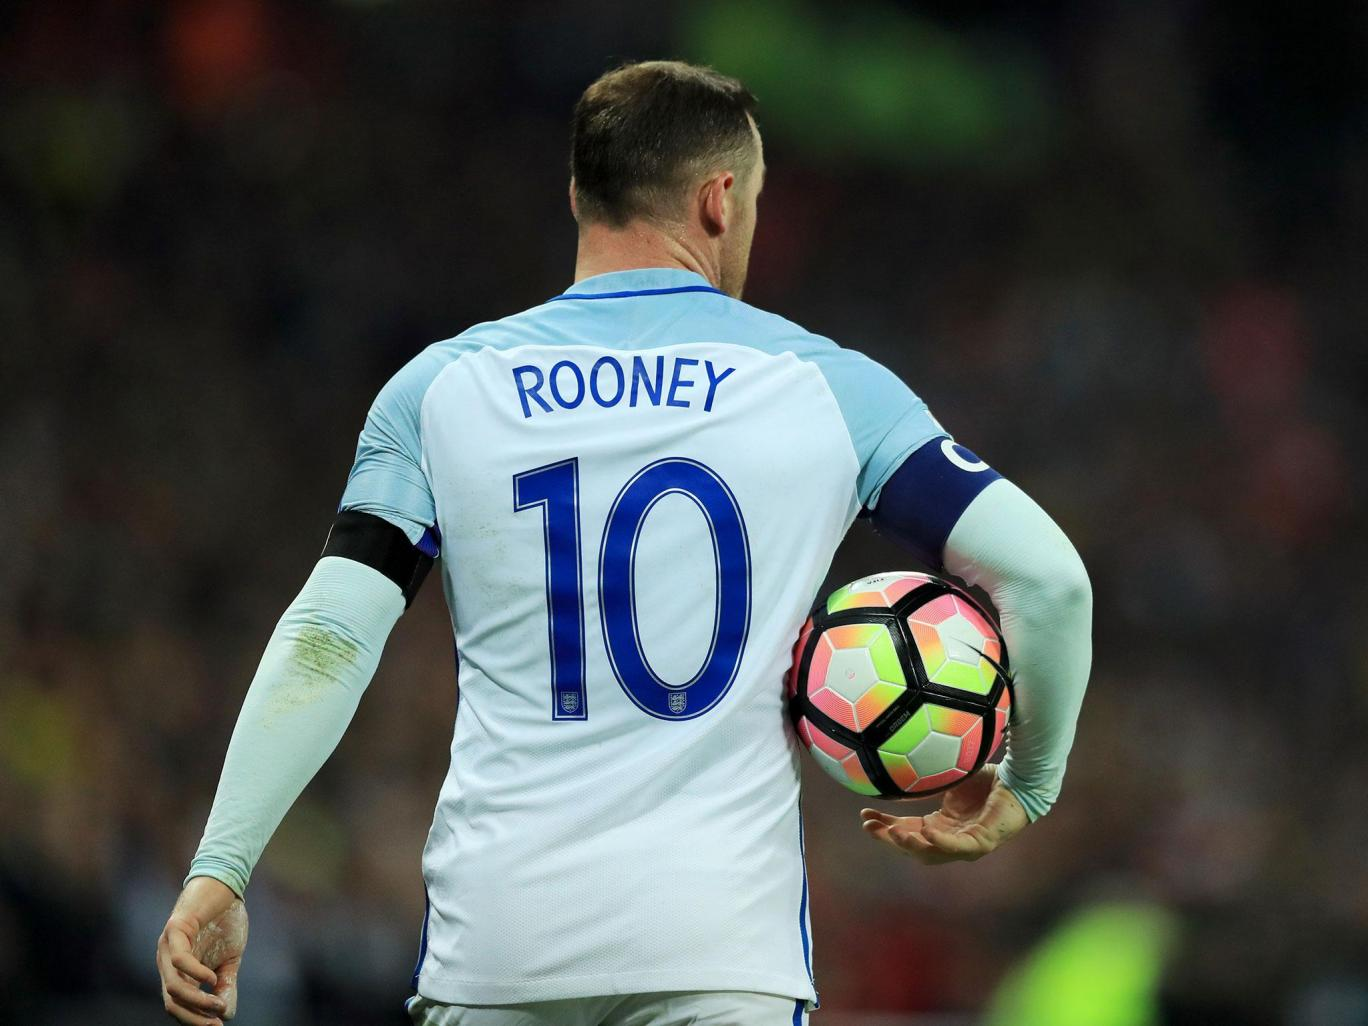 Swan song! Wayne Rooney set for England Recall at 33